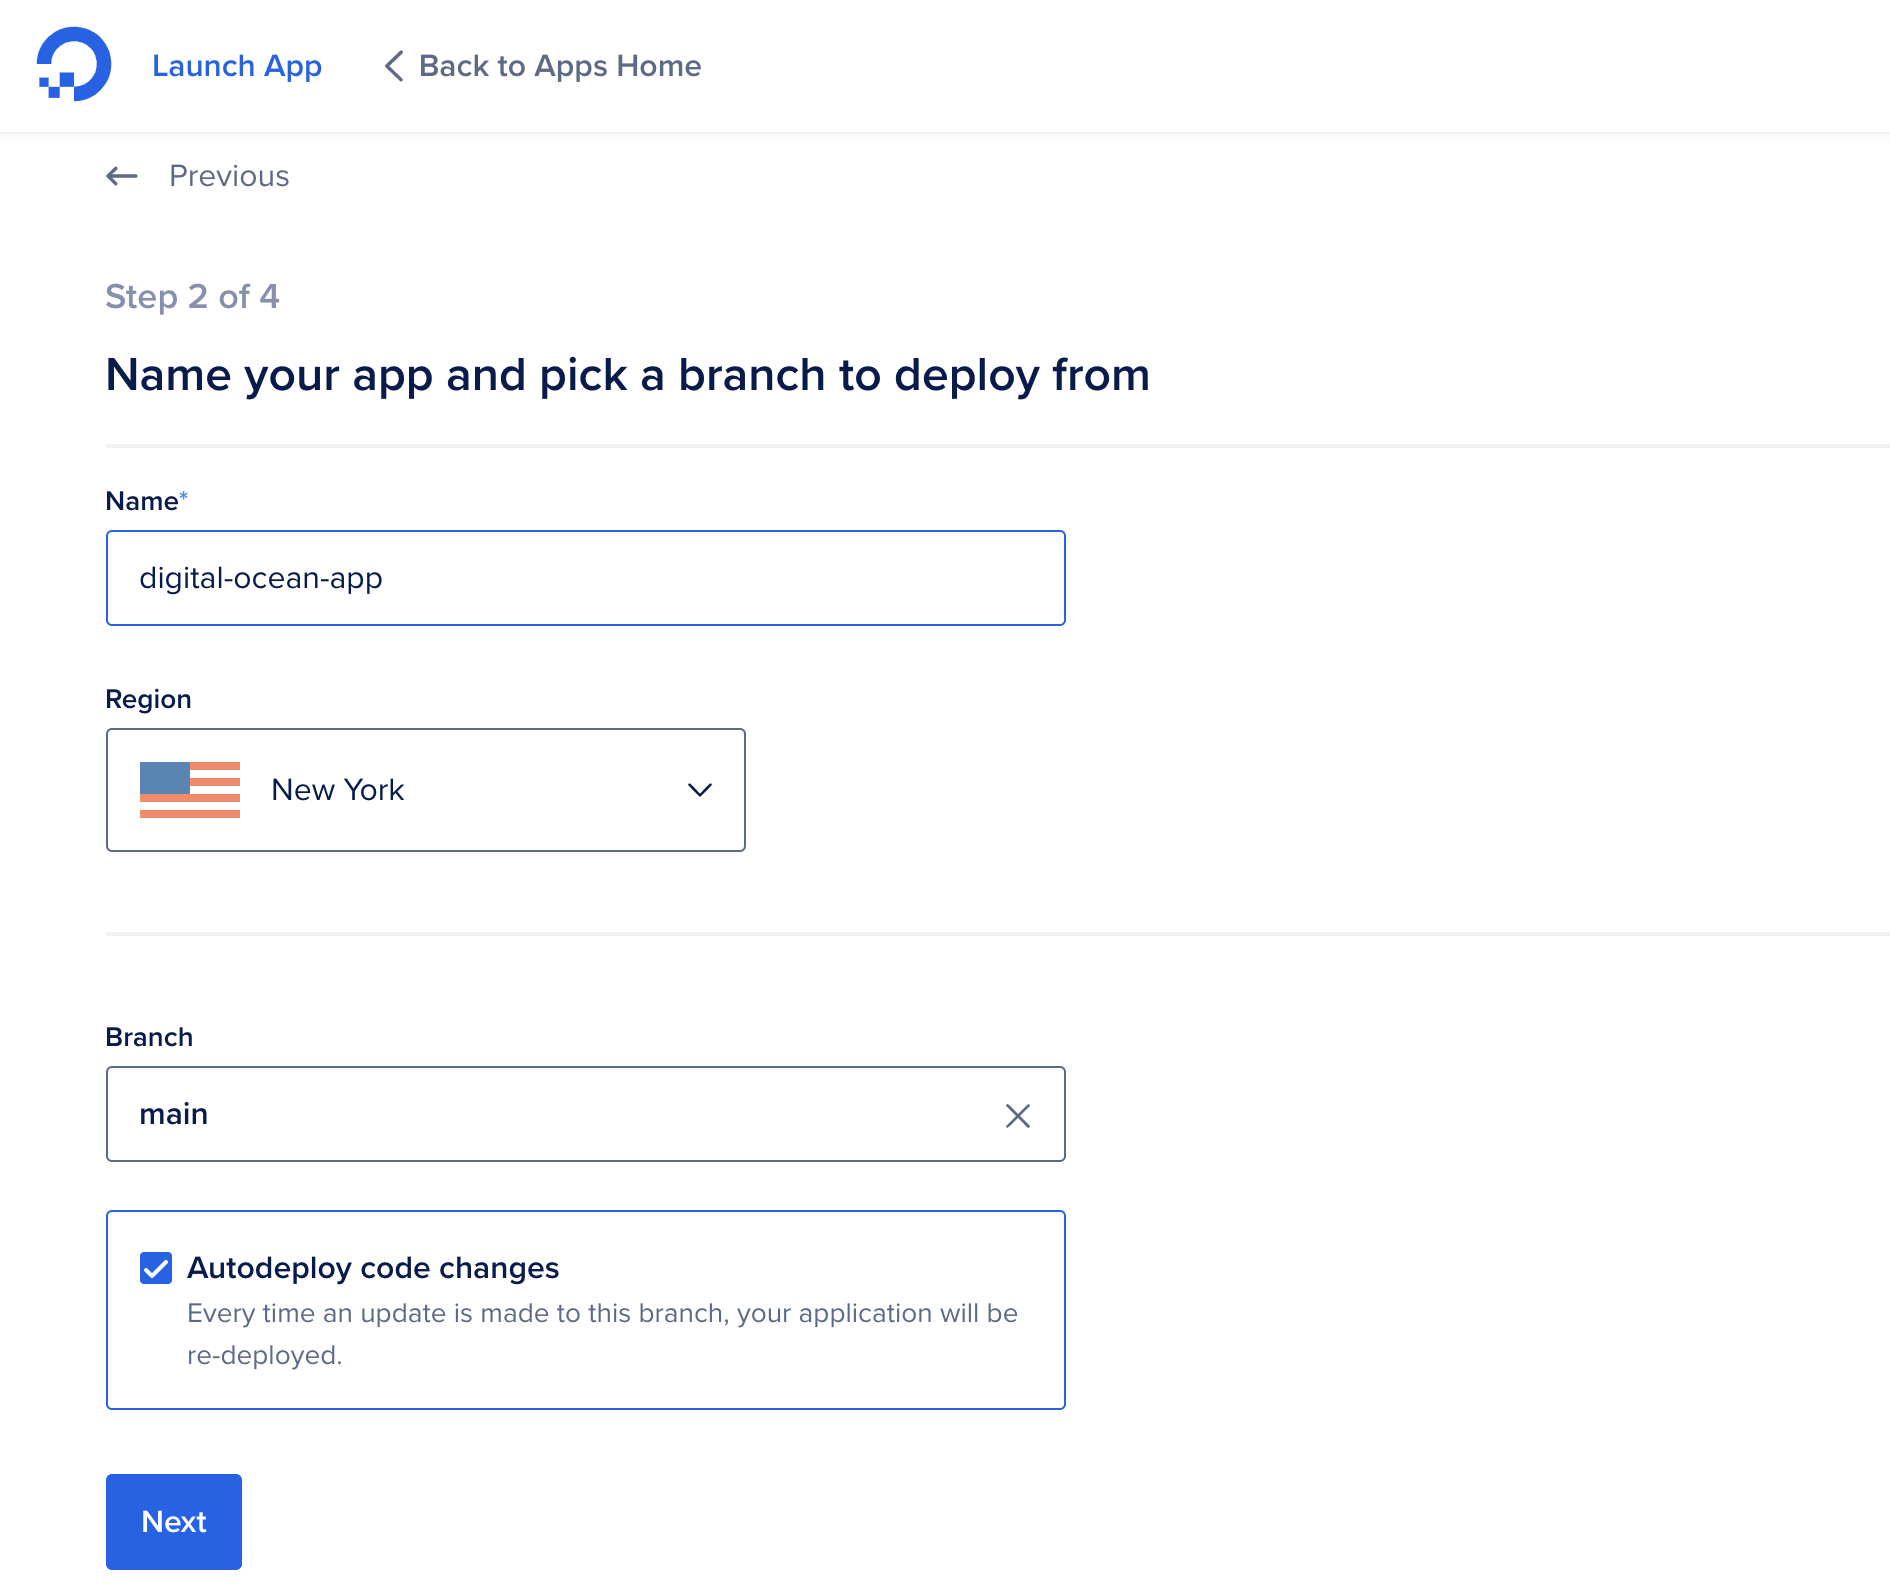 Select branch and location in the DigitalOcean interface